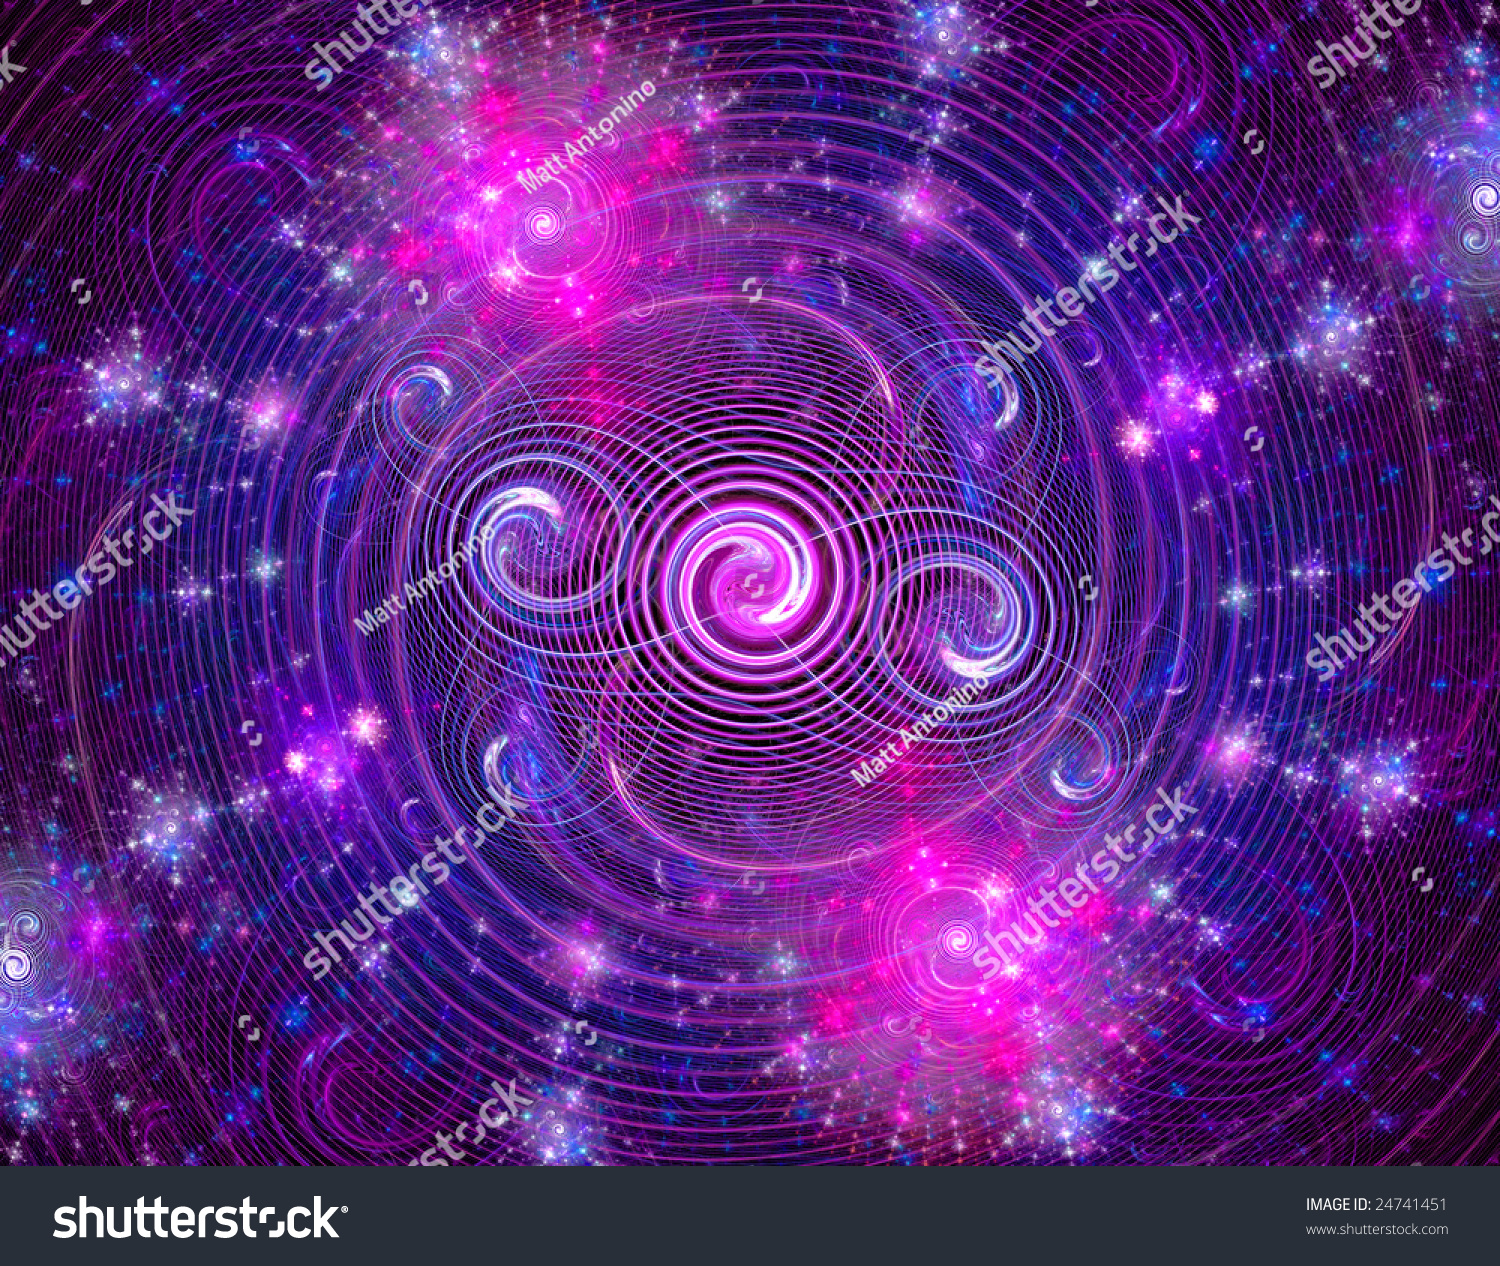 Purple Abstract Fractal Wallpaper Design Over A Black